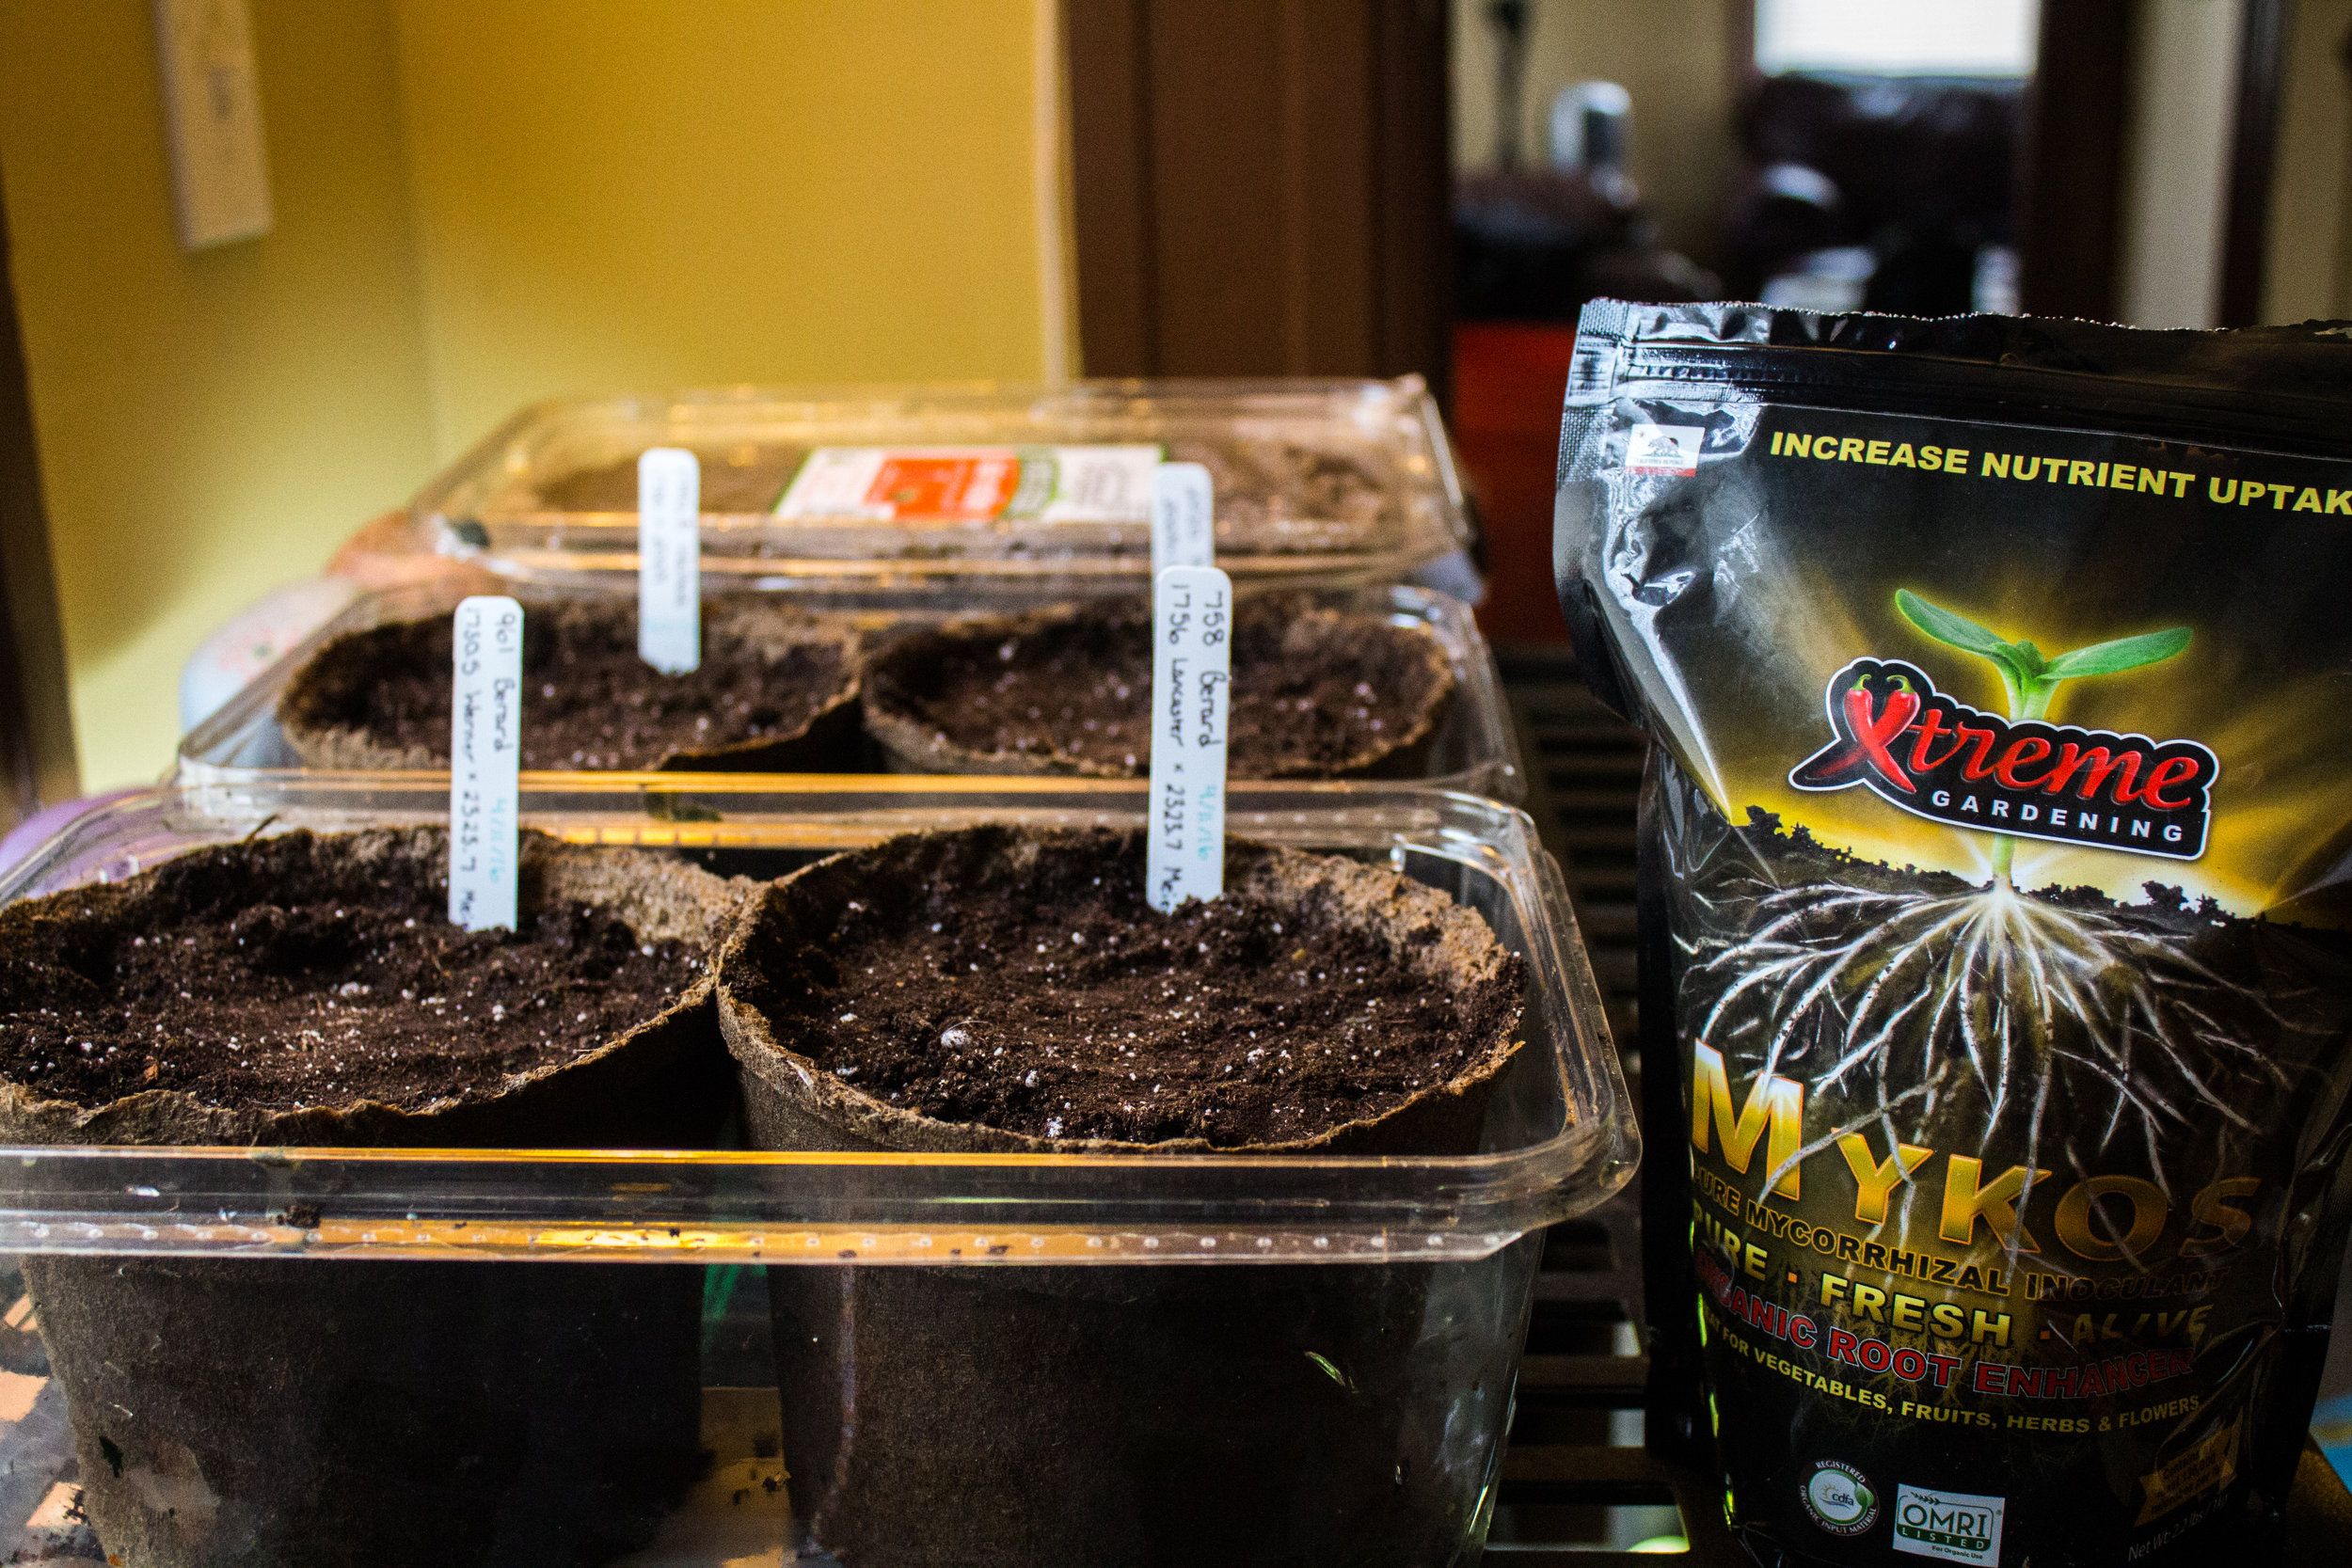 Starting the seeds on 4/11/16